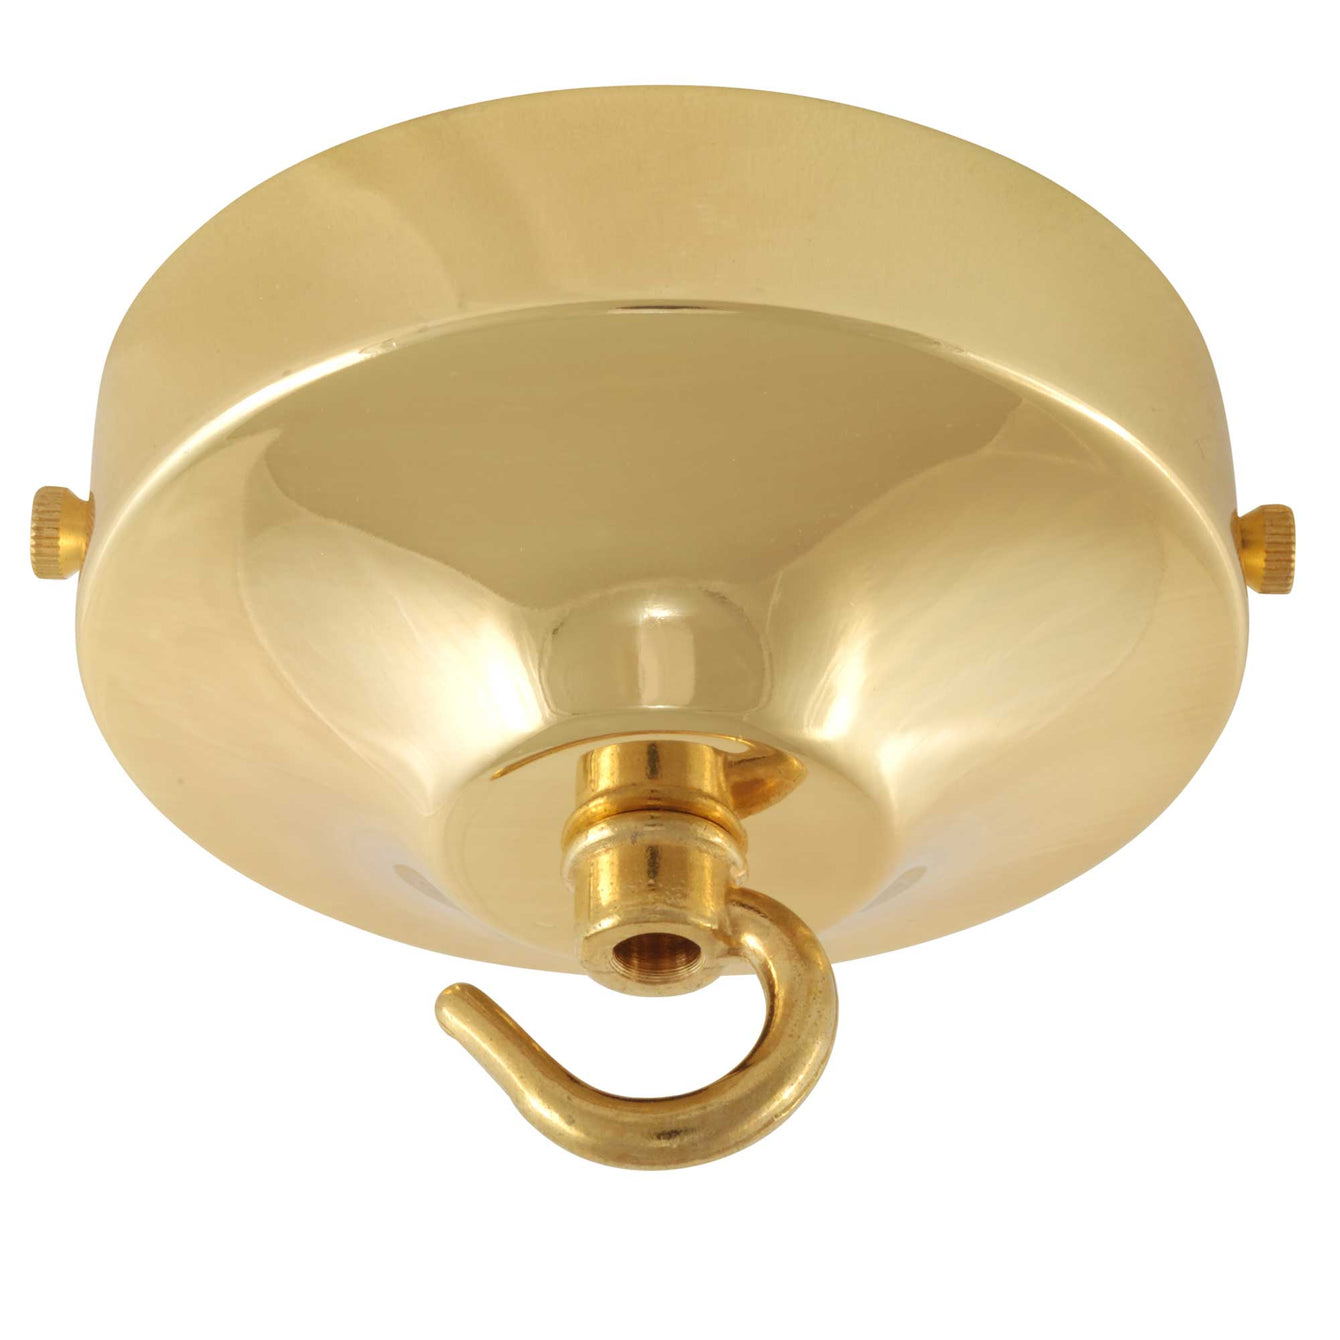 ElekTek 100mm Diameter Convex Ceiling Rose with Strap Bracket and Hook Metallic and Powder Coated Finishes Antique Brass